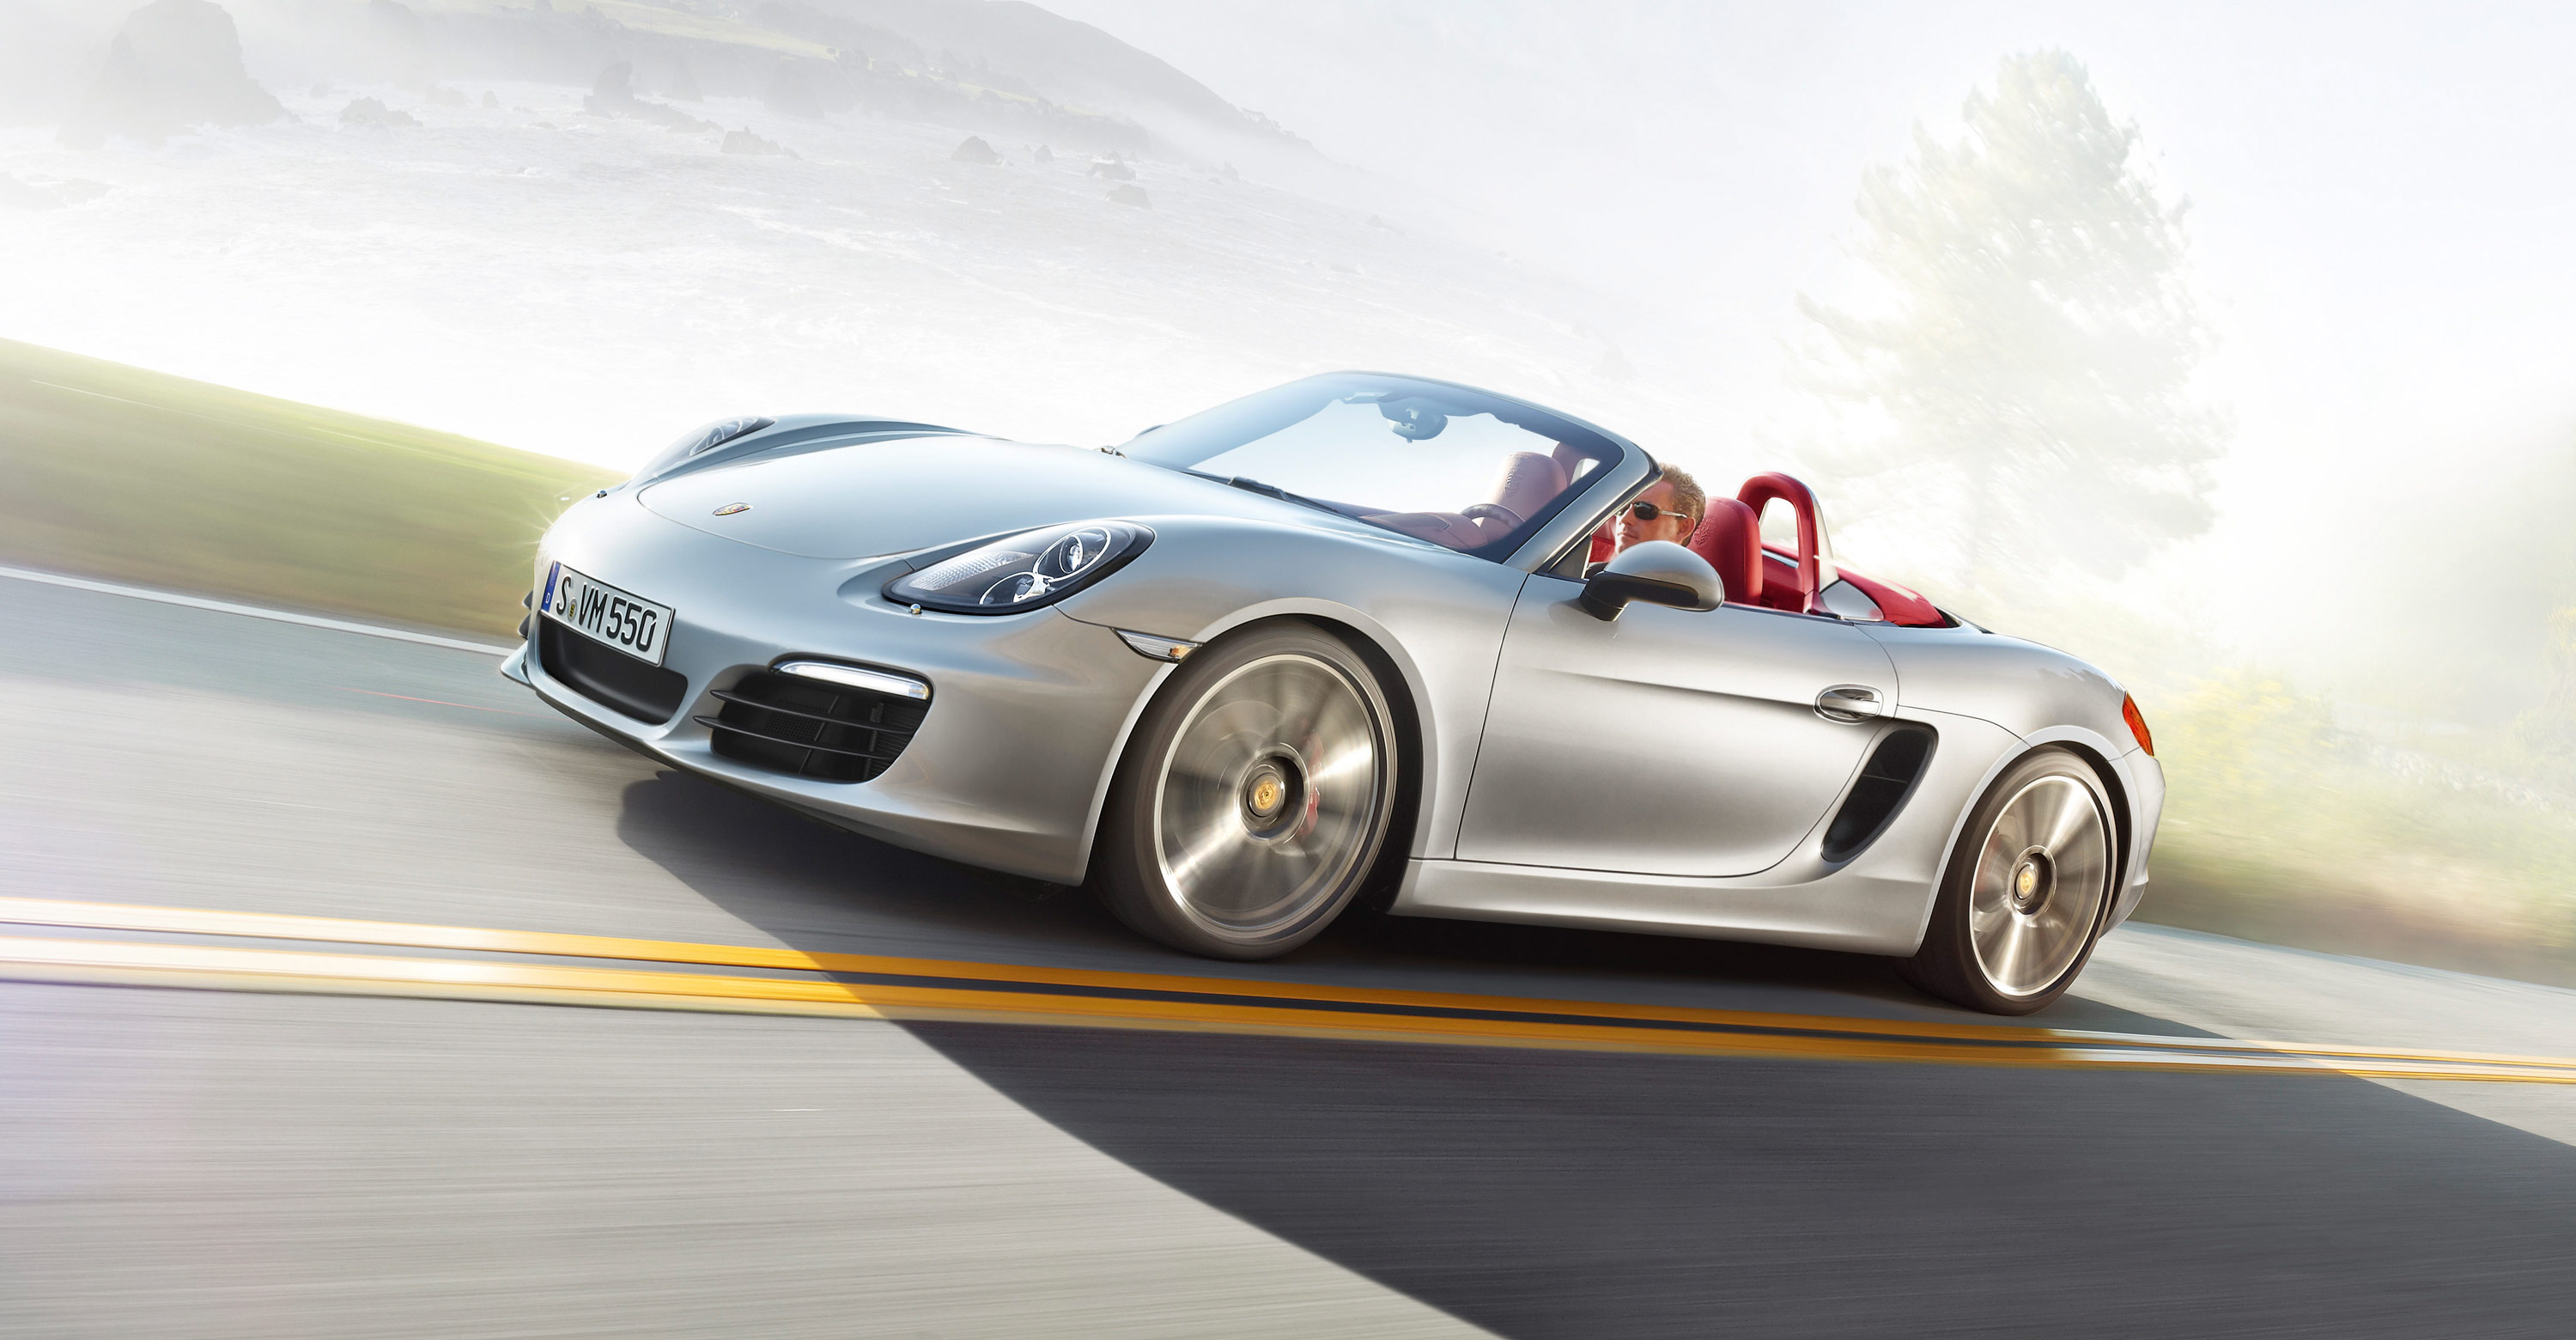 2012 Porsche Boxster S - Front angle side view